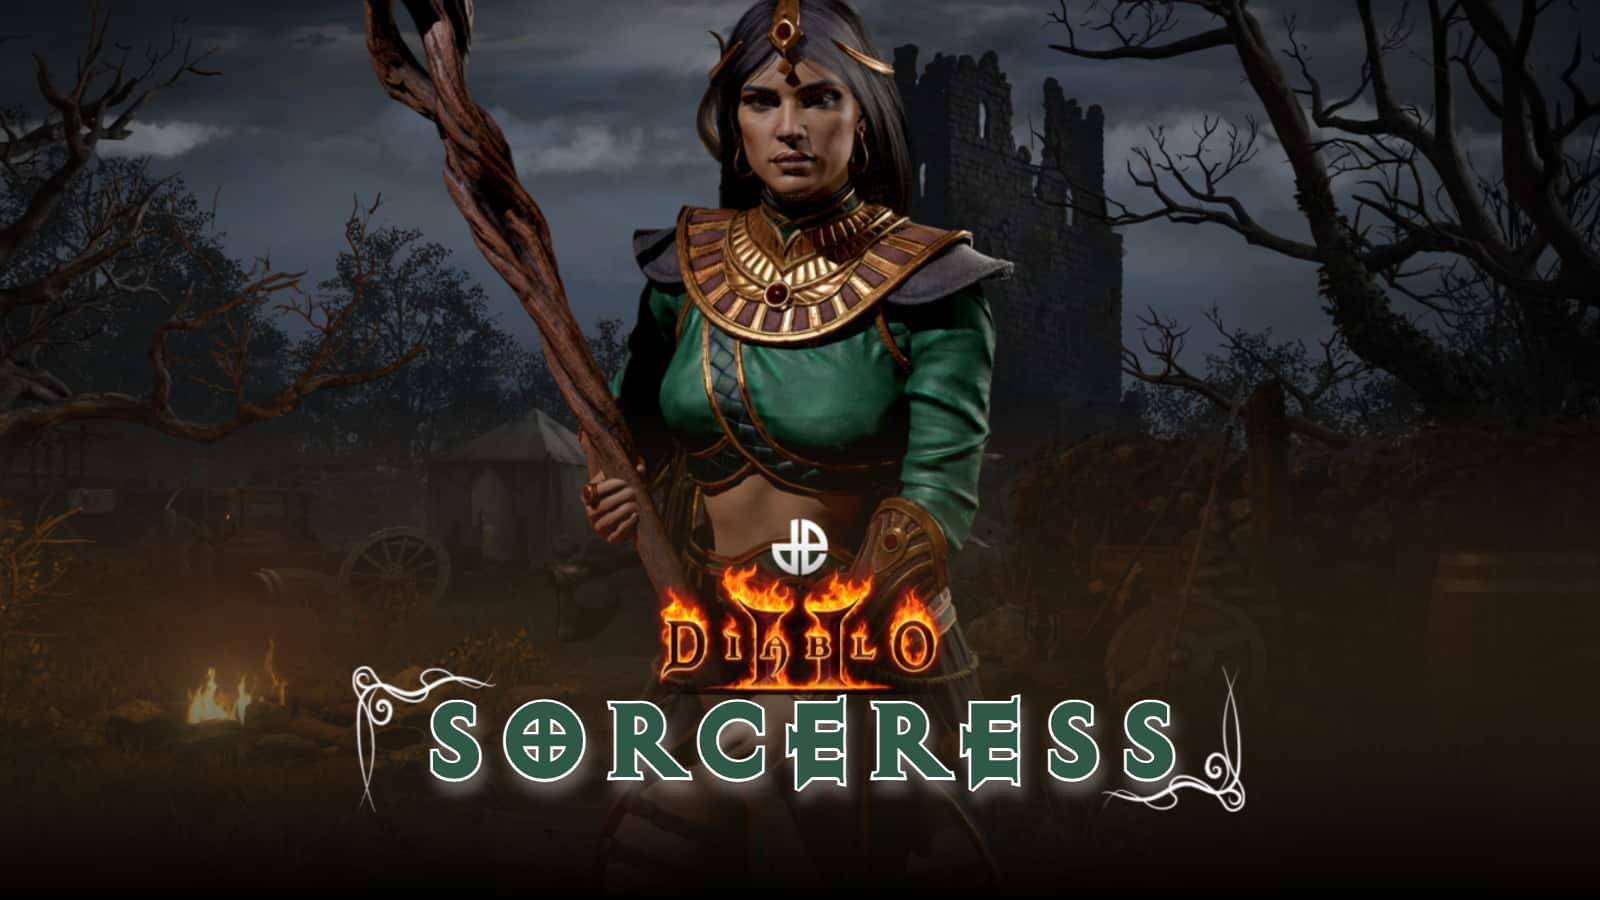 Diablo 2: Resurrected - 2 builds for the sorceress, explained quickly and easily